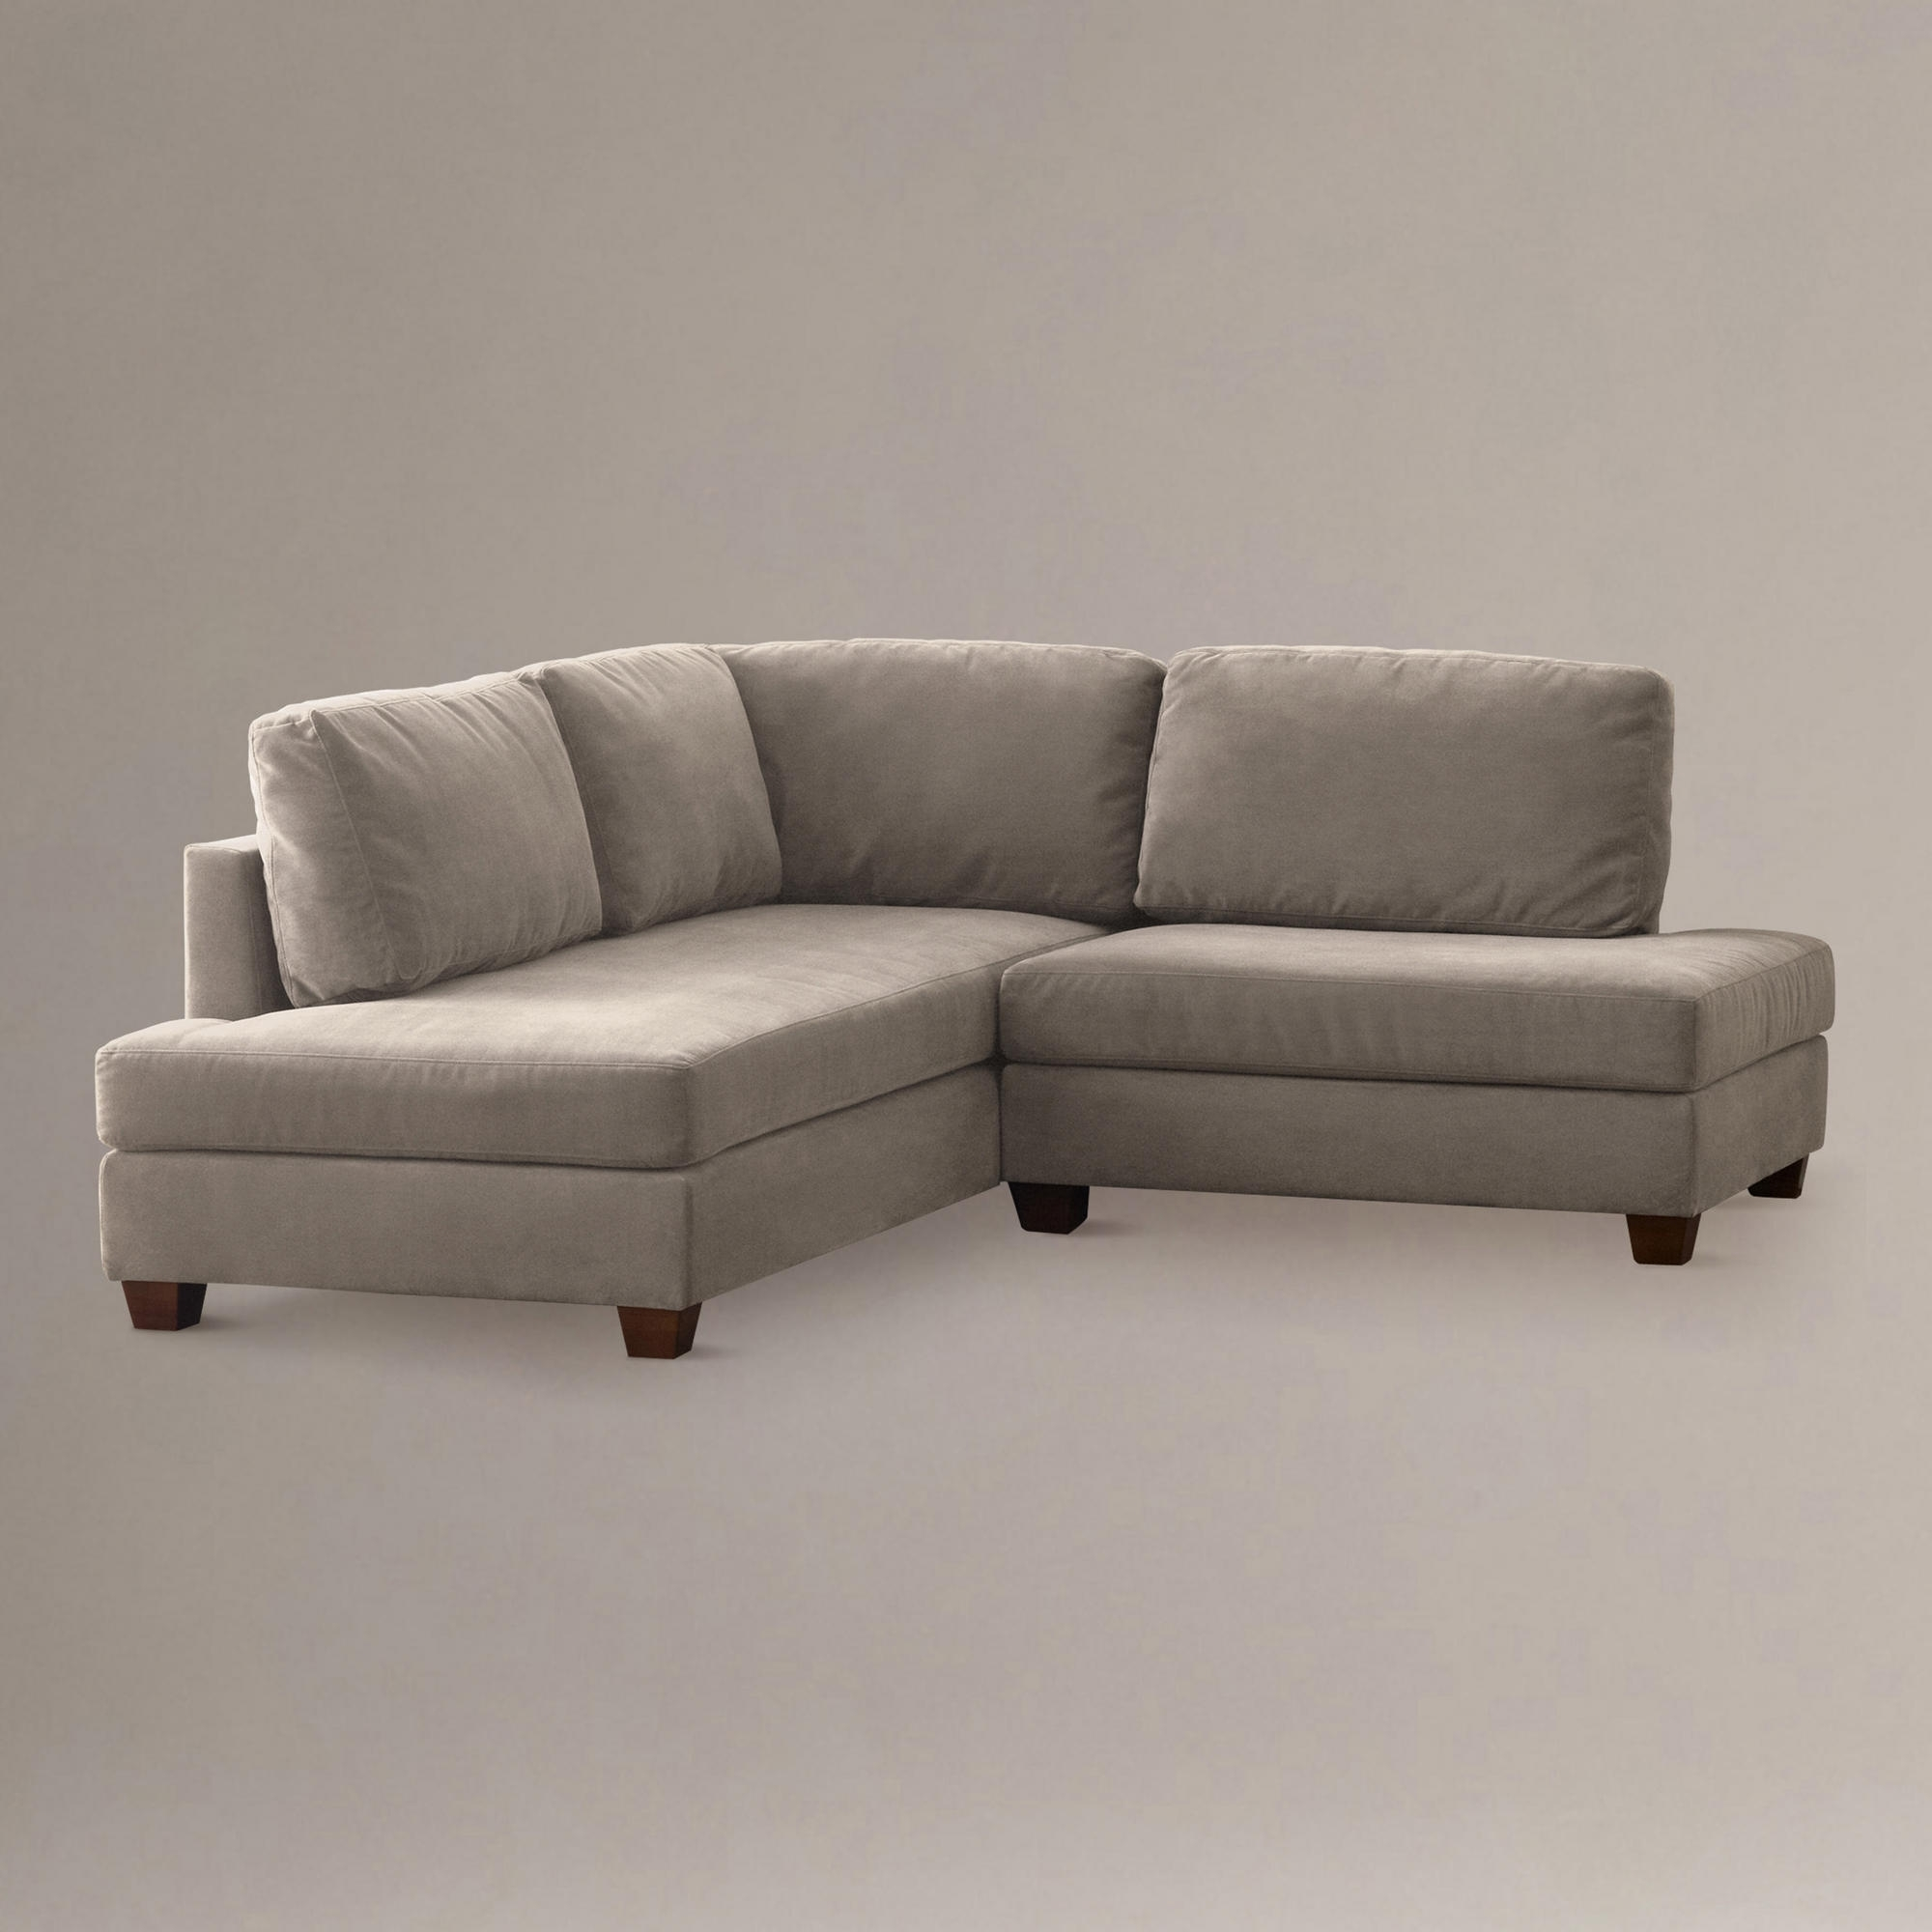 Sofa : Fancy Small L Sectional Sofa Small L Sectional Sofa Small Inside Well Known Small Modular Sofas (View 18 of 20)